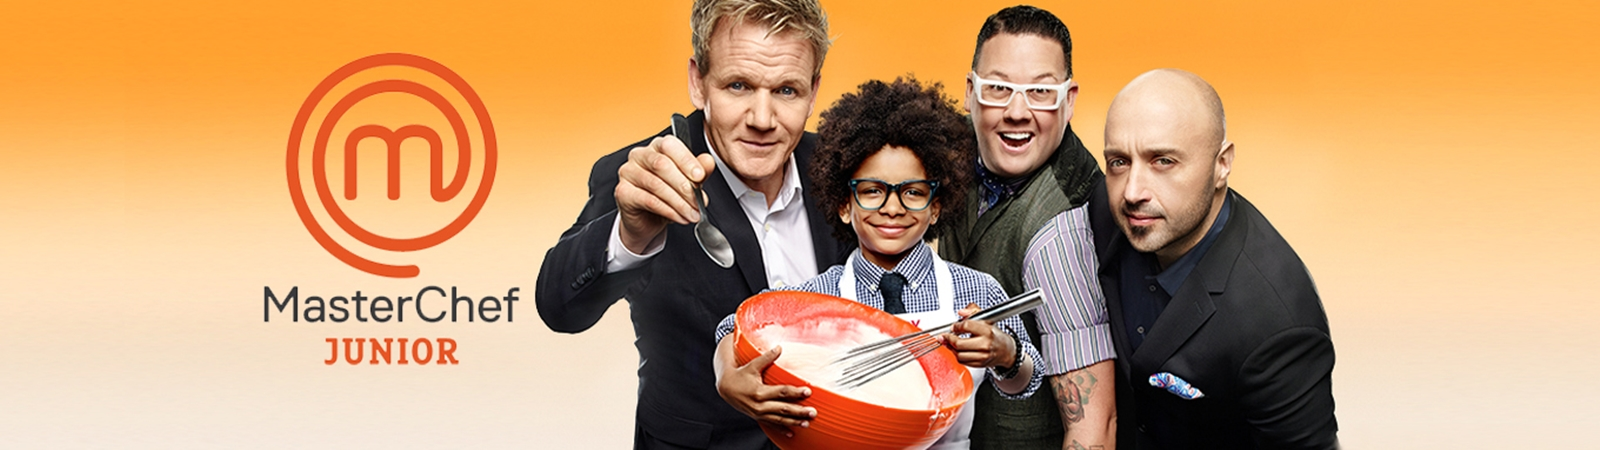 Tập 4 - Masterchef Junior US - Season 3